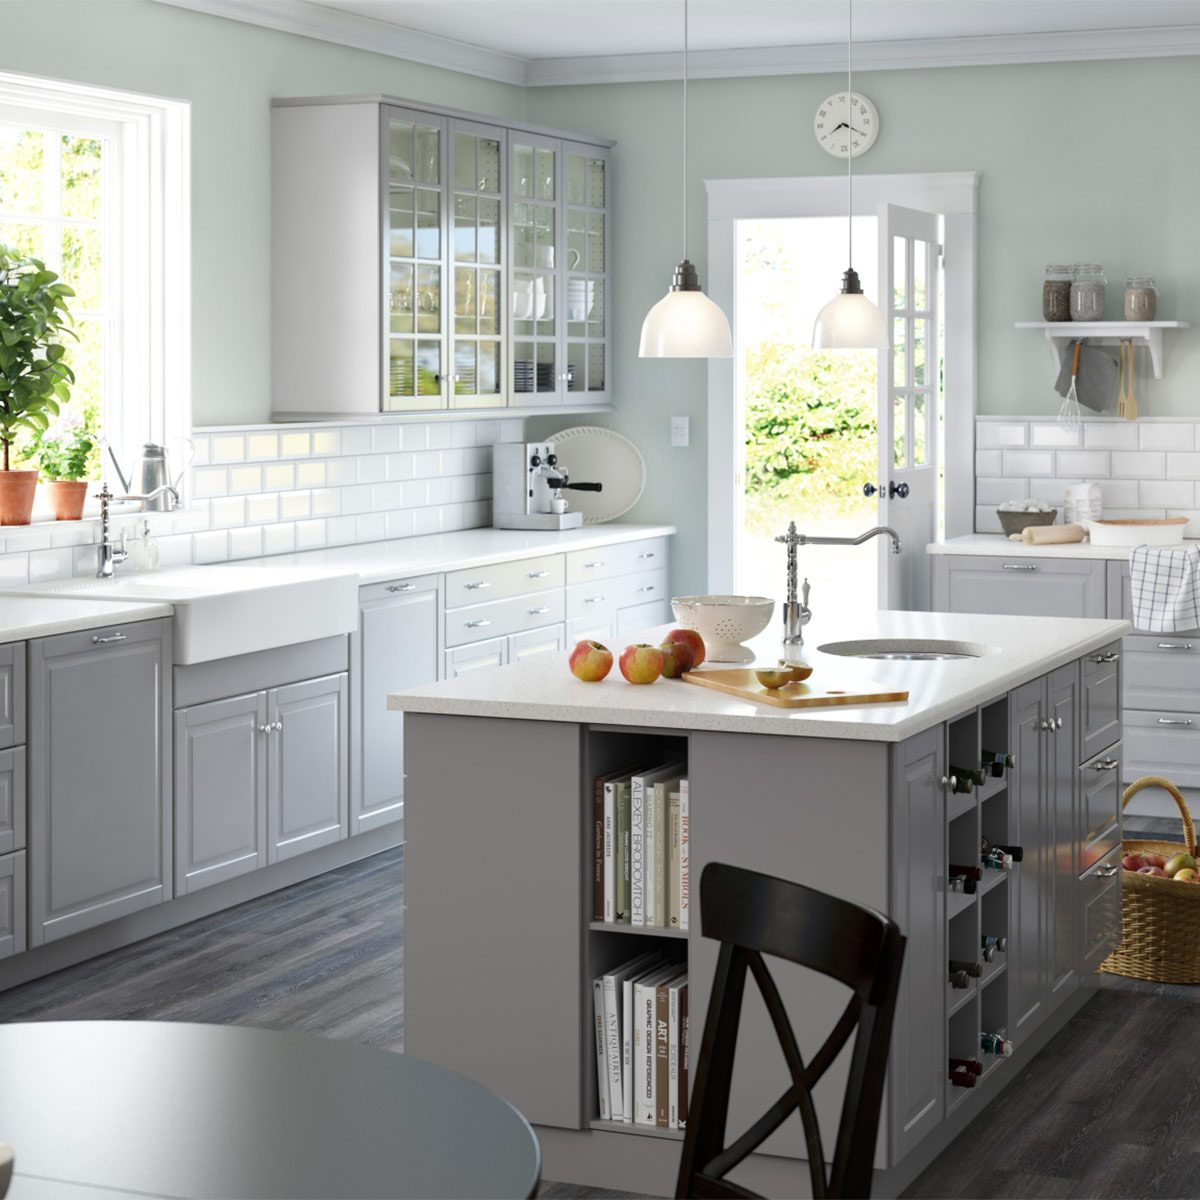 Ikea Kitchen: 16 Reasons IKEA Is A DIYers Dream Destination